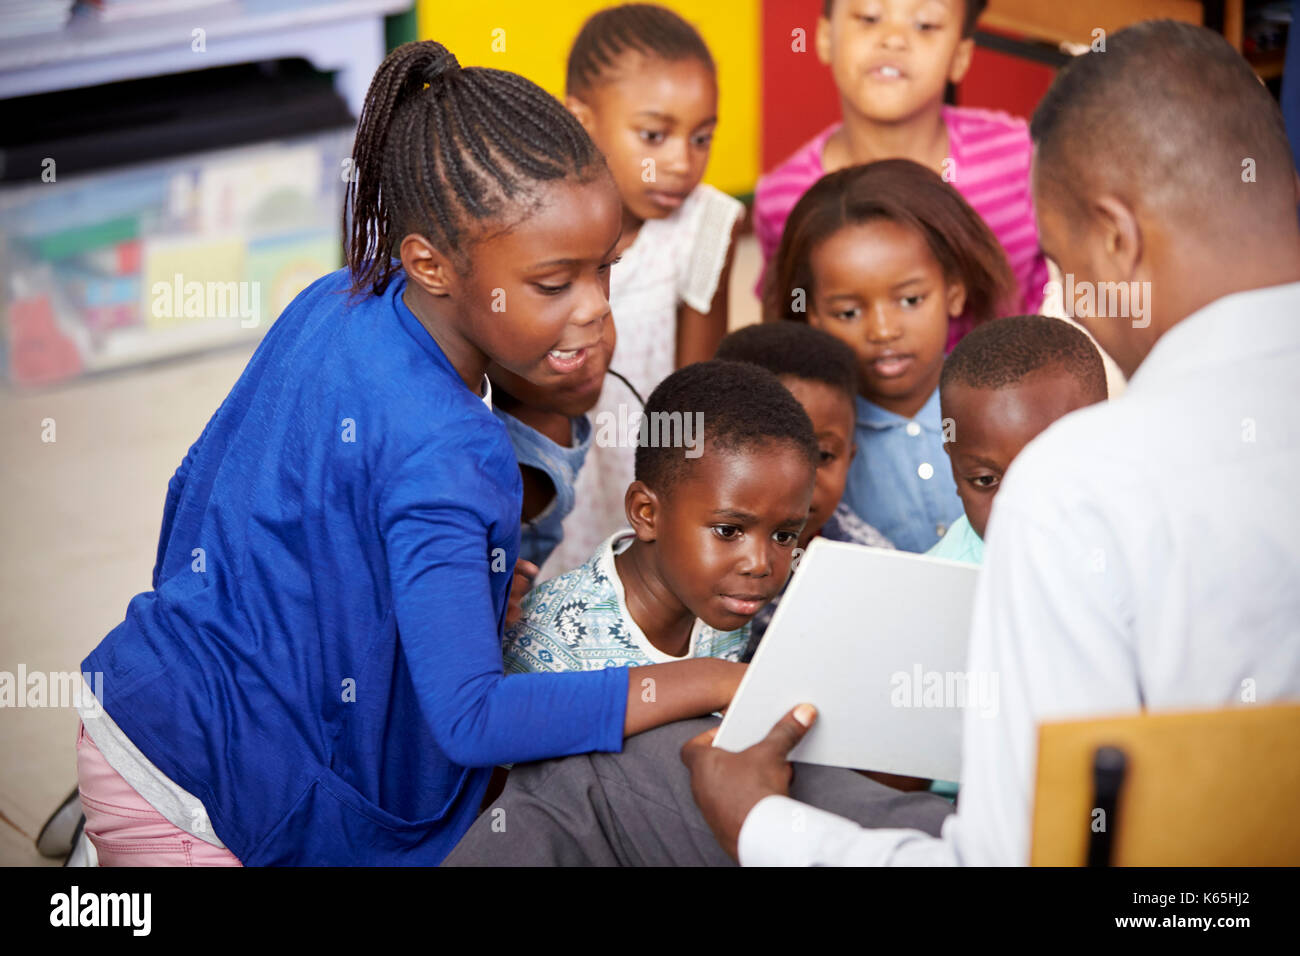 Teacher showing kids a book during elementary school lesson - Stock Image